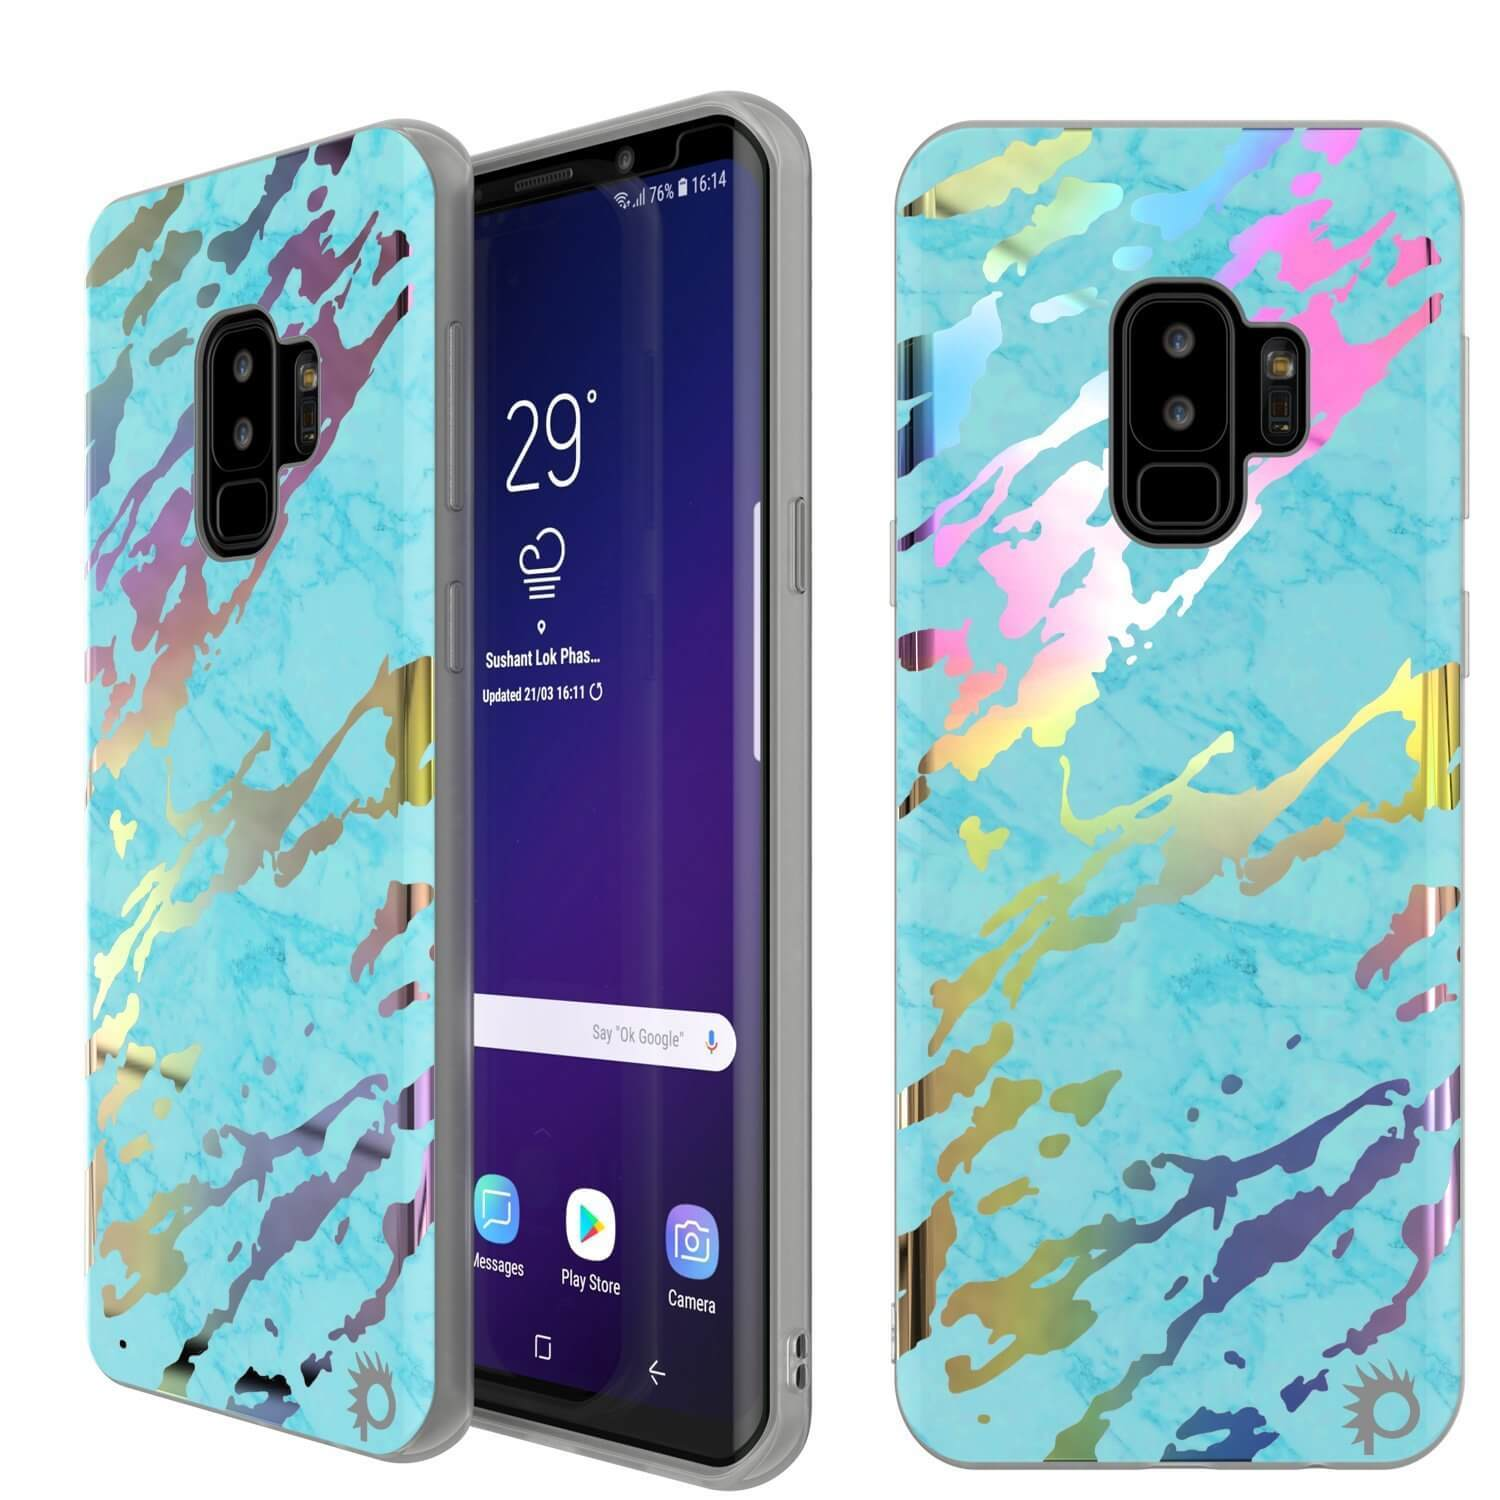 Galaxy S9+ Marble PunkCase Protective Full Body Cover (Teal Onyx)